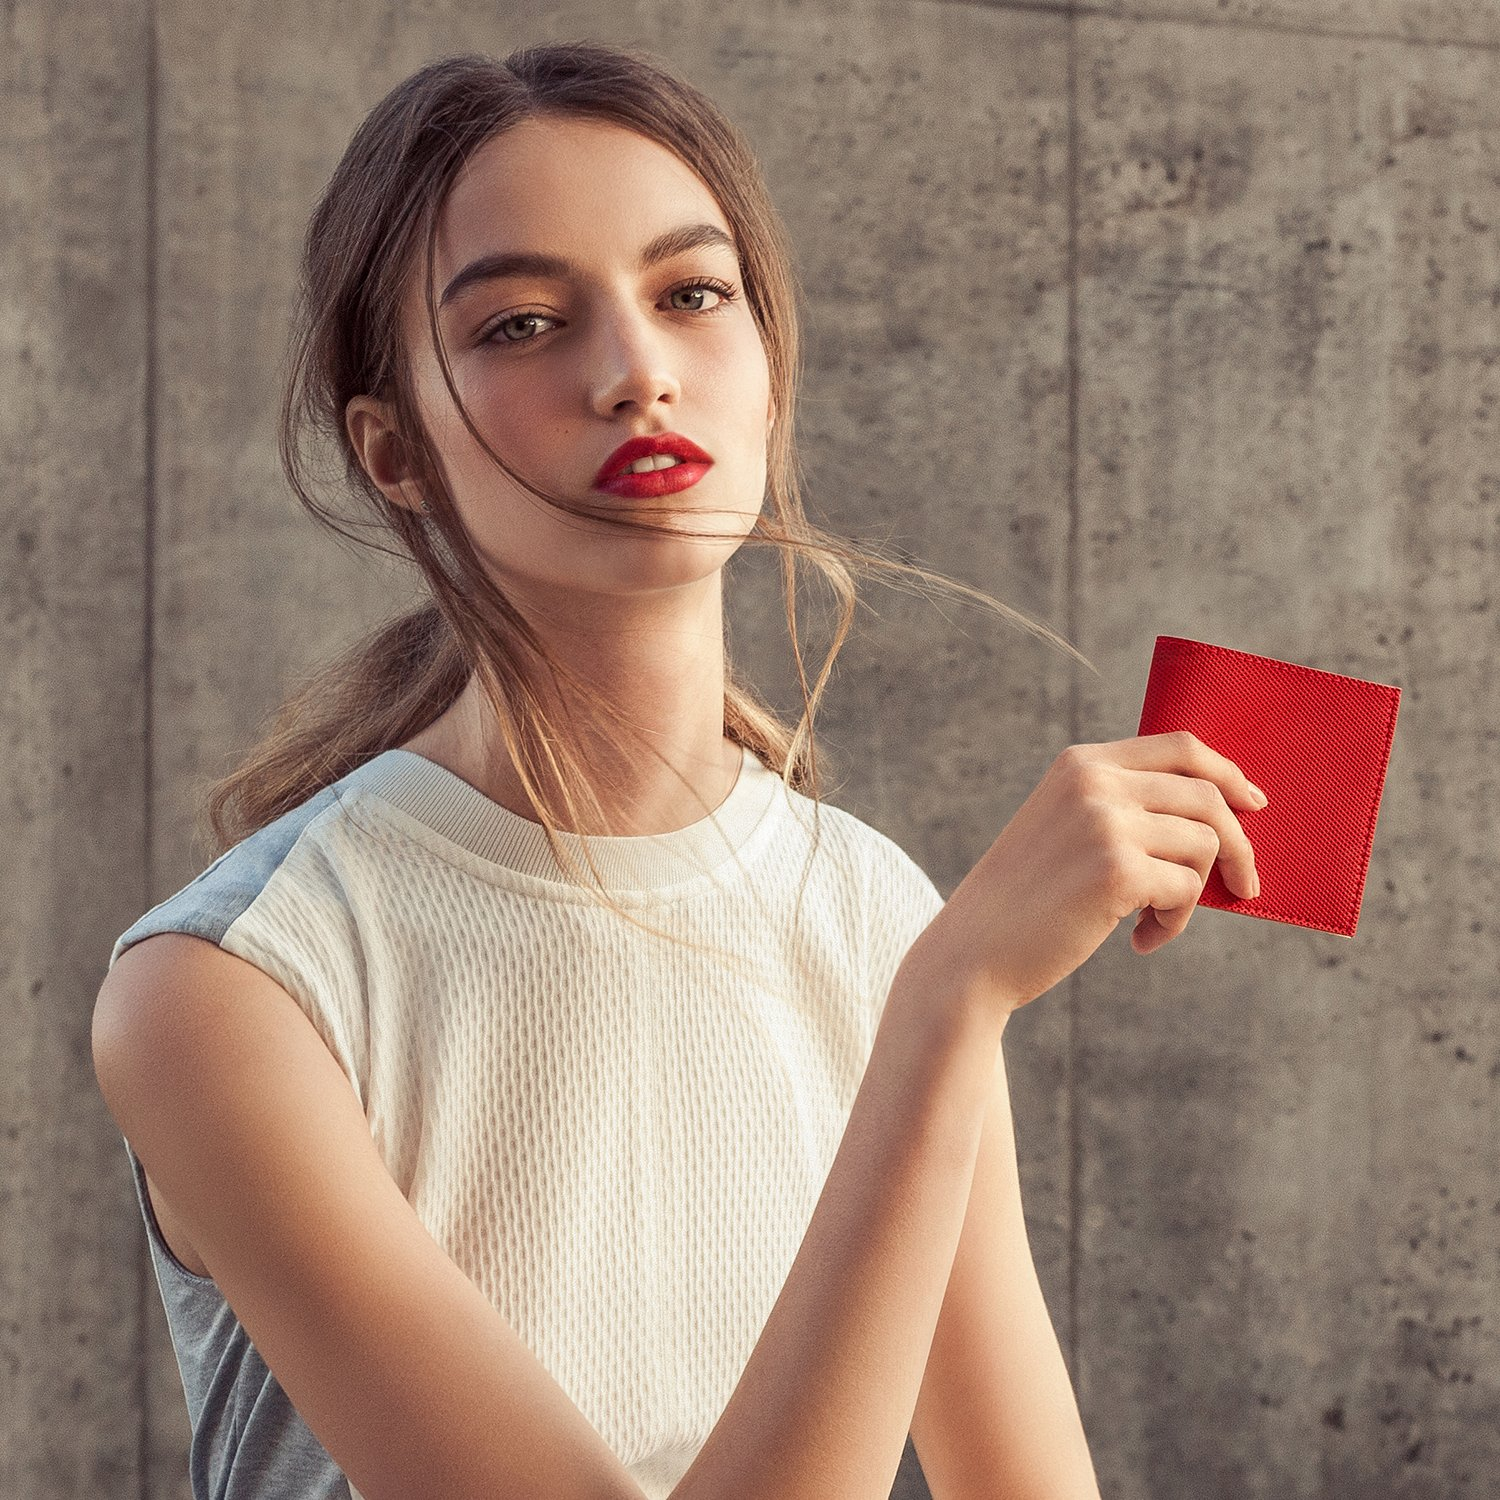 Woman with red lipstick holding a red smart Baggizmo Wiseward wallet